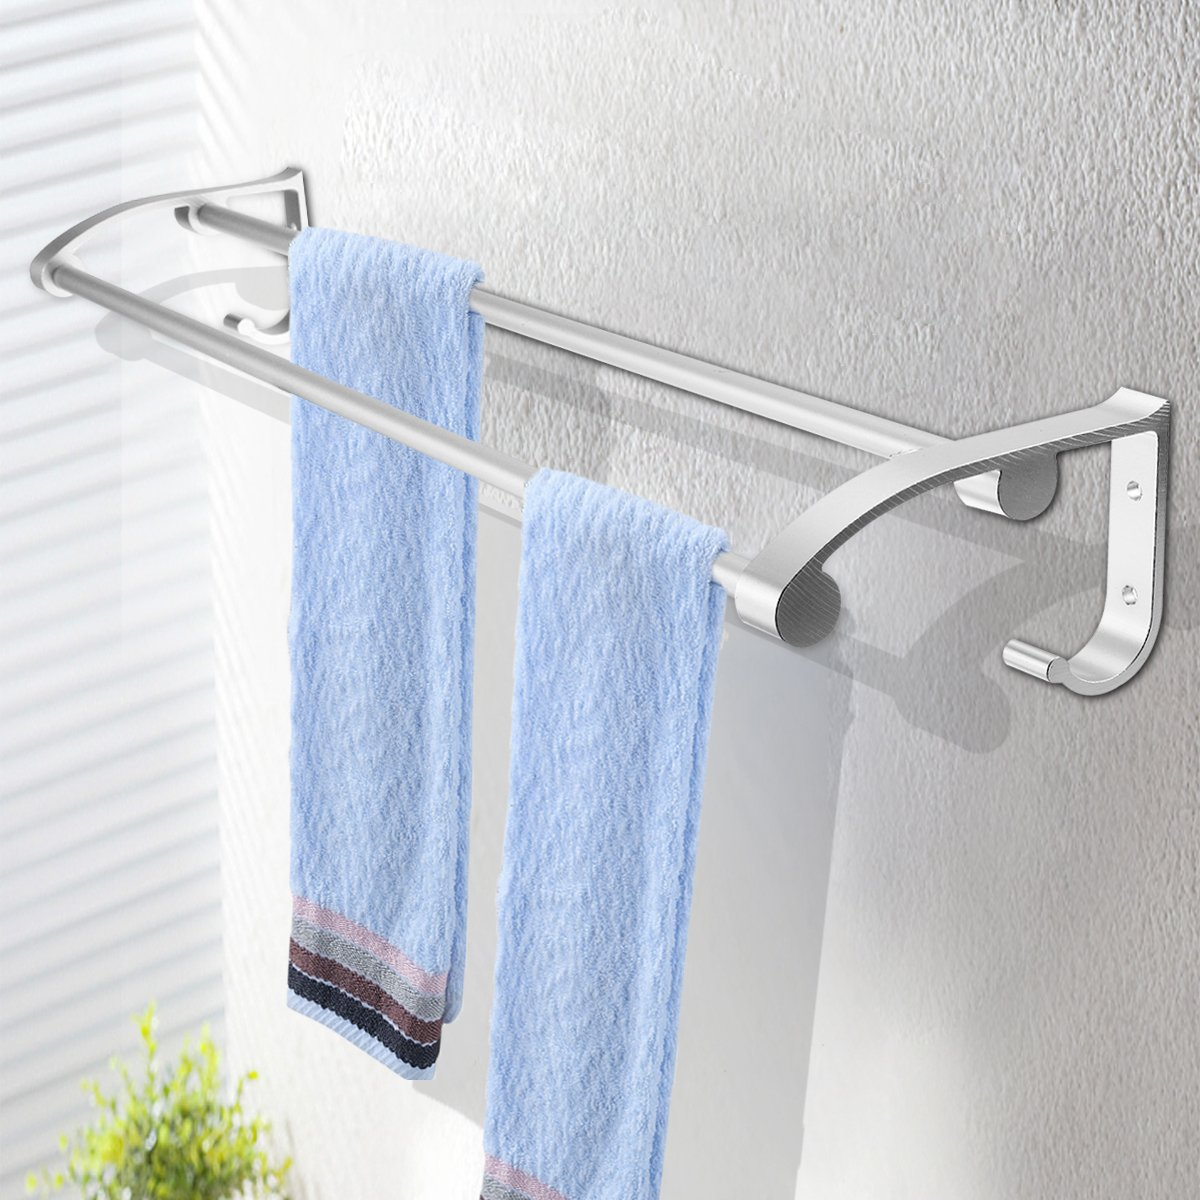 Vivona Hardware & Accessories Stainless Steel Towel Rack Hook Wall Mounted Rail Towel Double Shelf Storage Bathroom Kitchen Holder